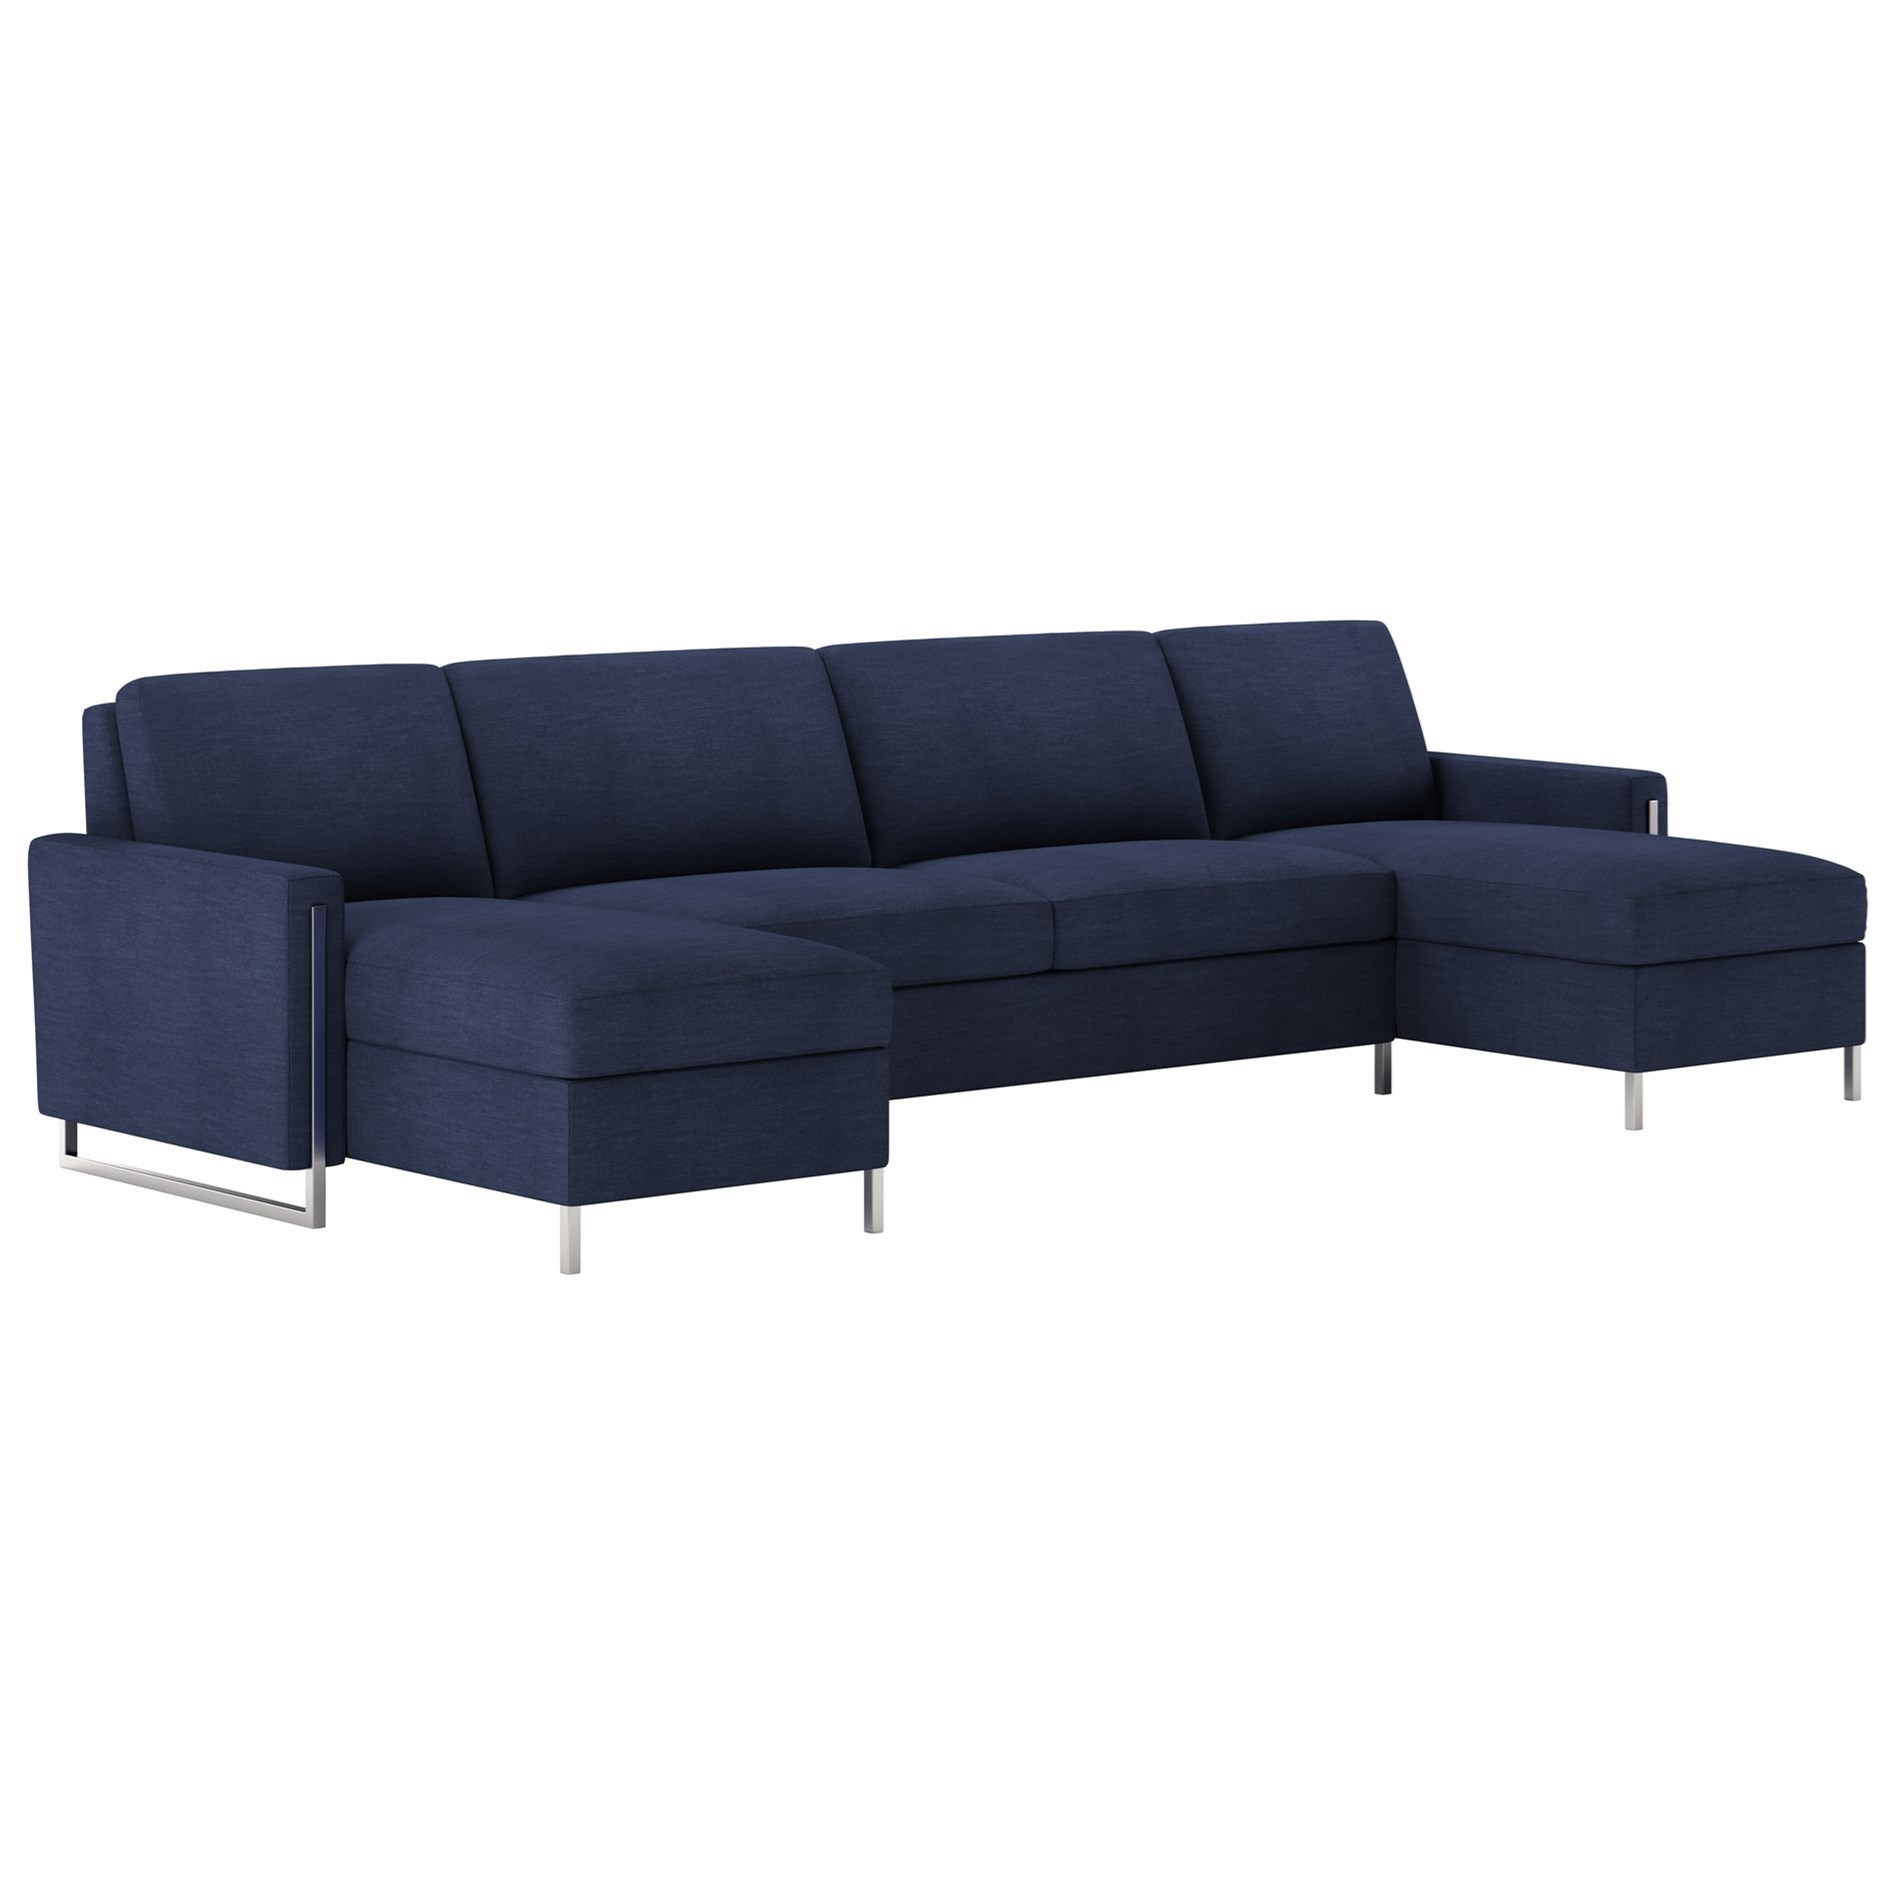 American Leather Sulley3 Pc Sect Sofa W/ Queen Sleeper U0026 2 Chaise ...